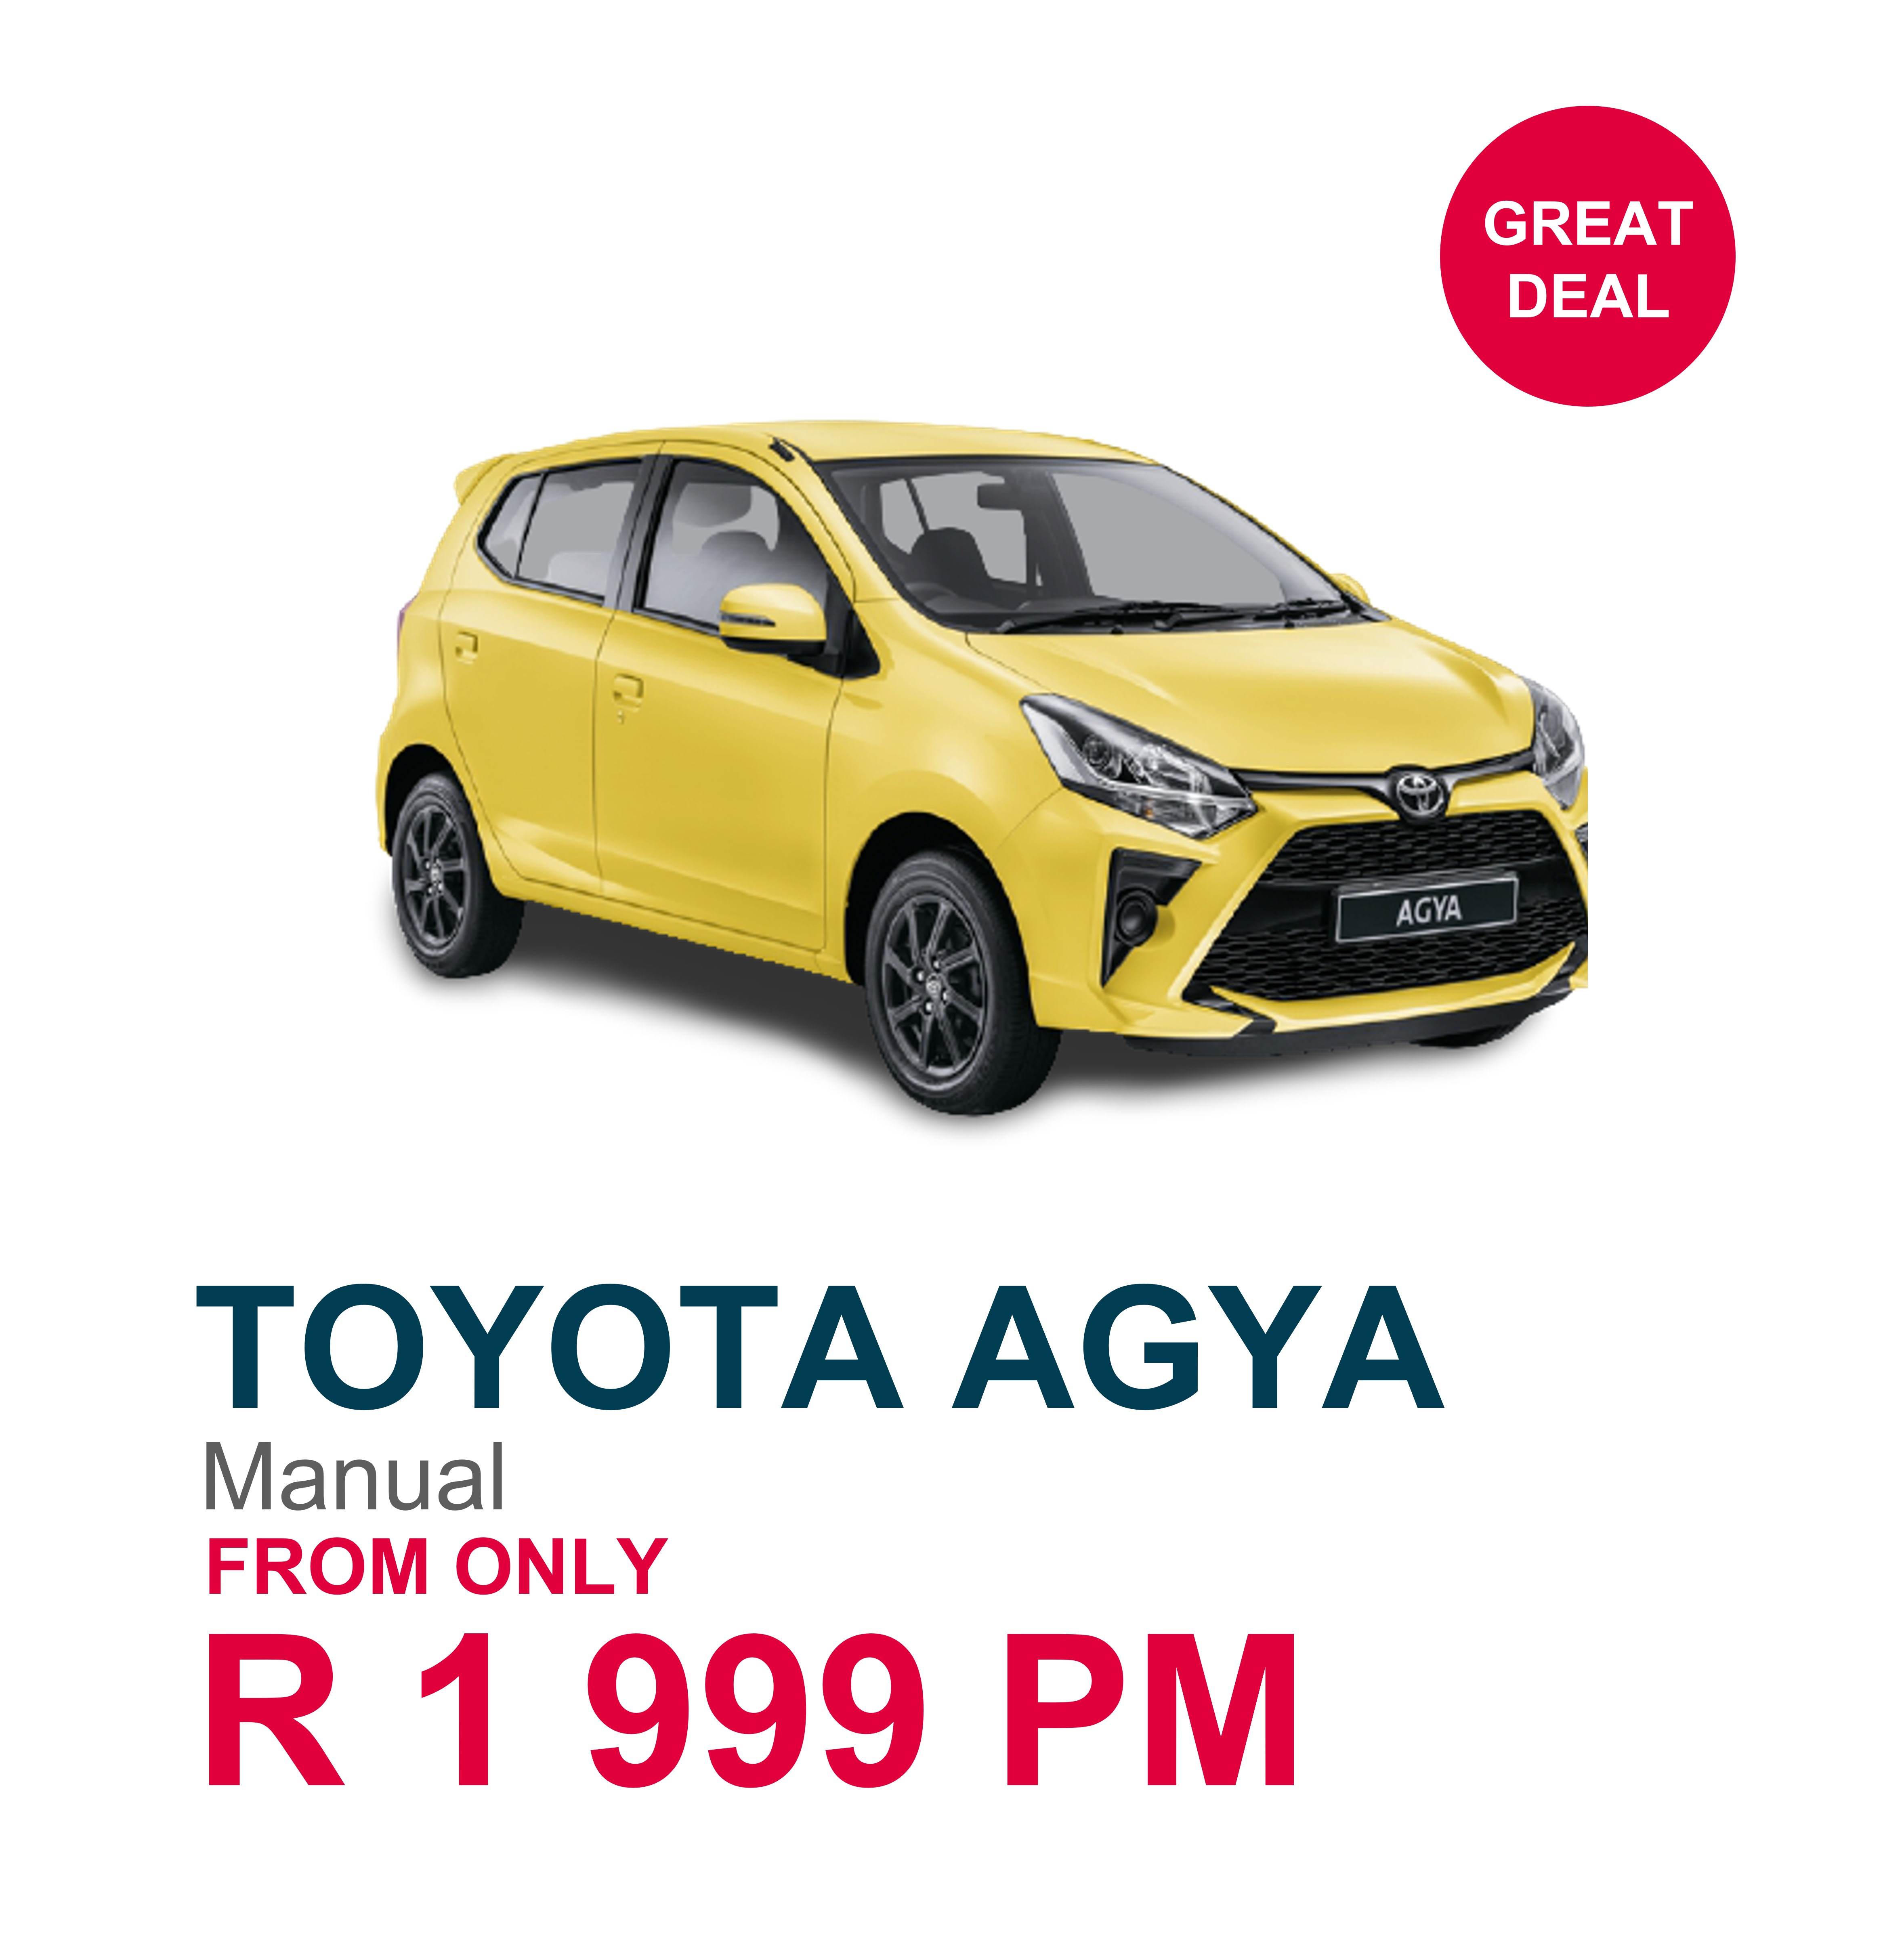 toyota-agya-manual-from-under-r2-000pm